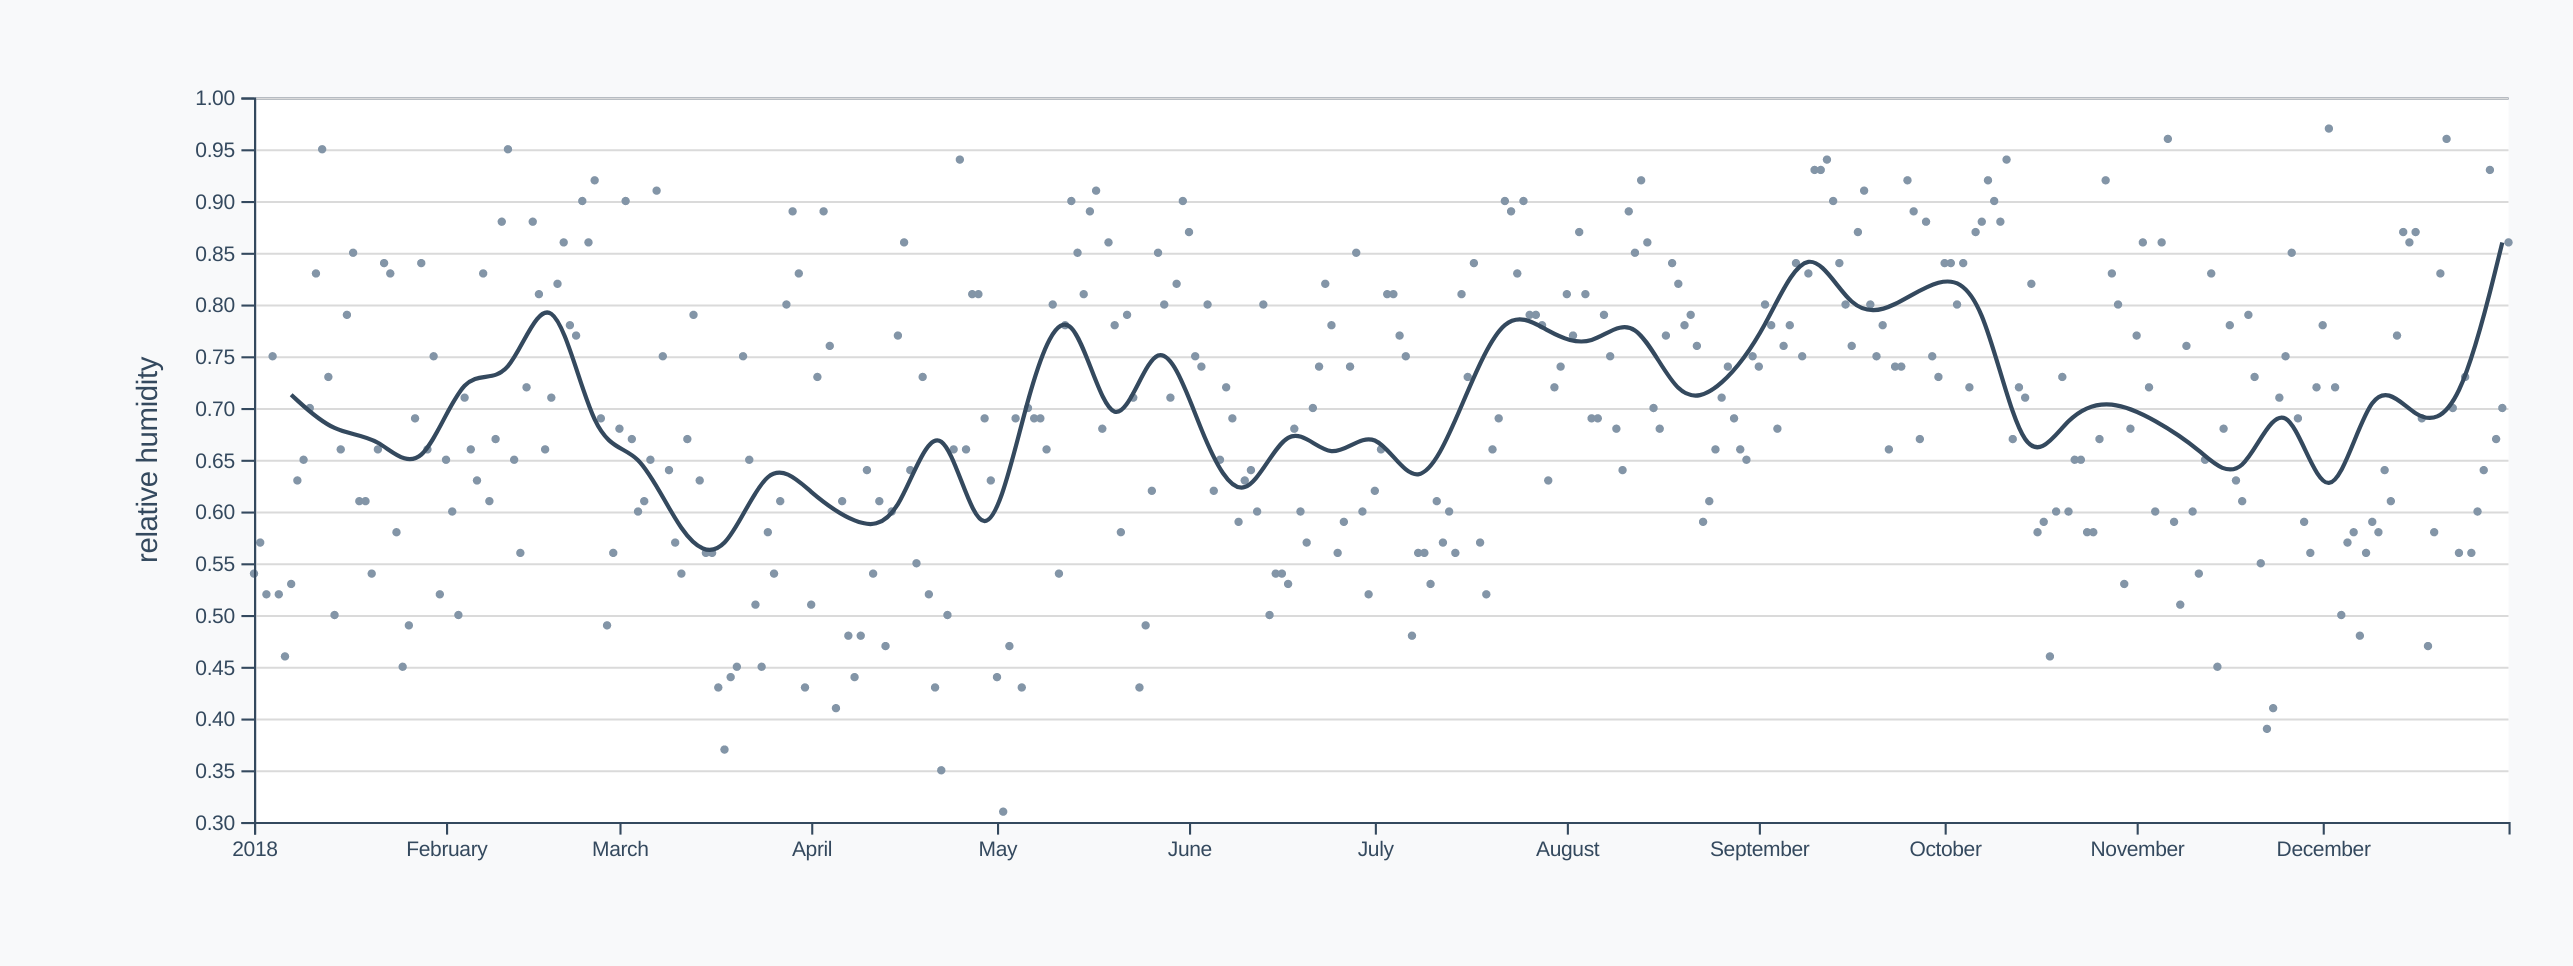 Humidity timeline, smoothed with dots